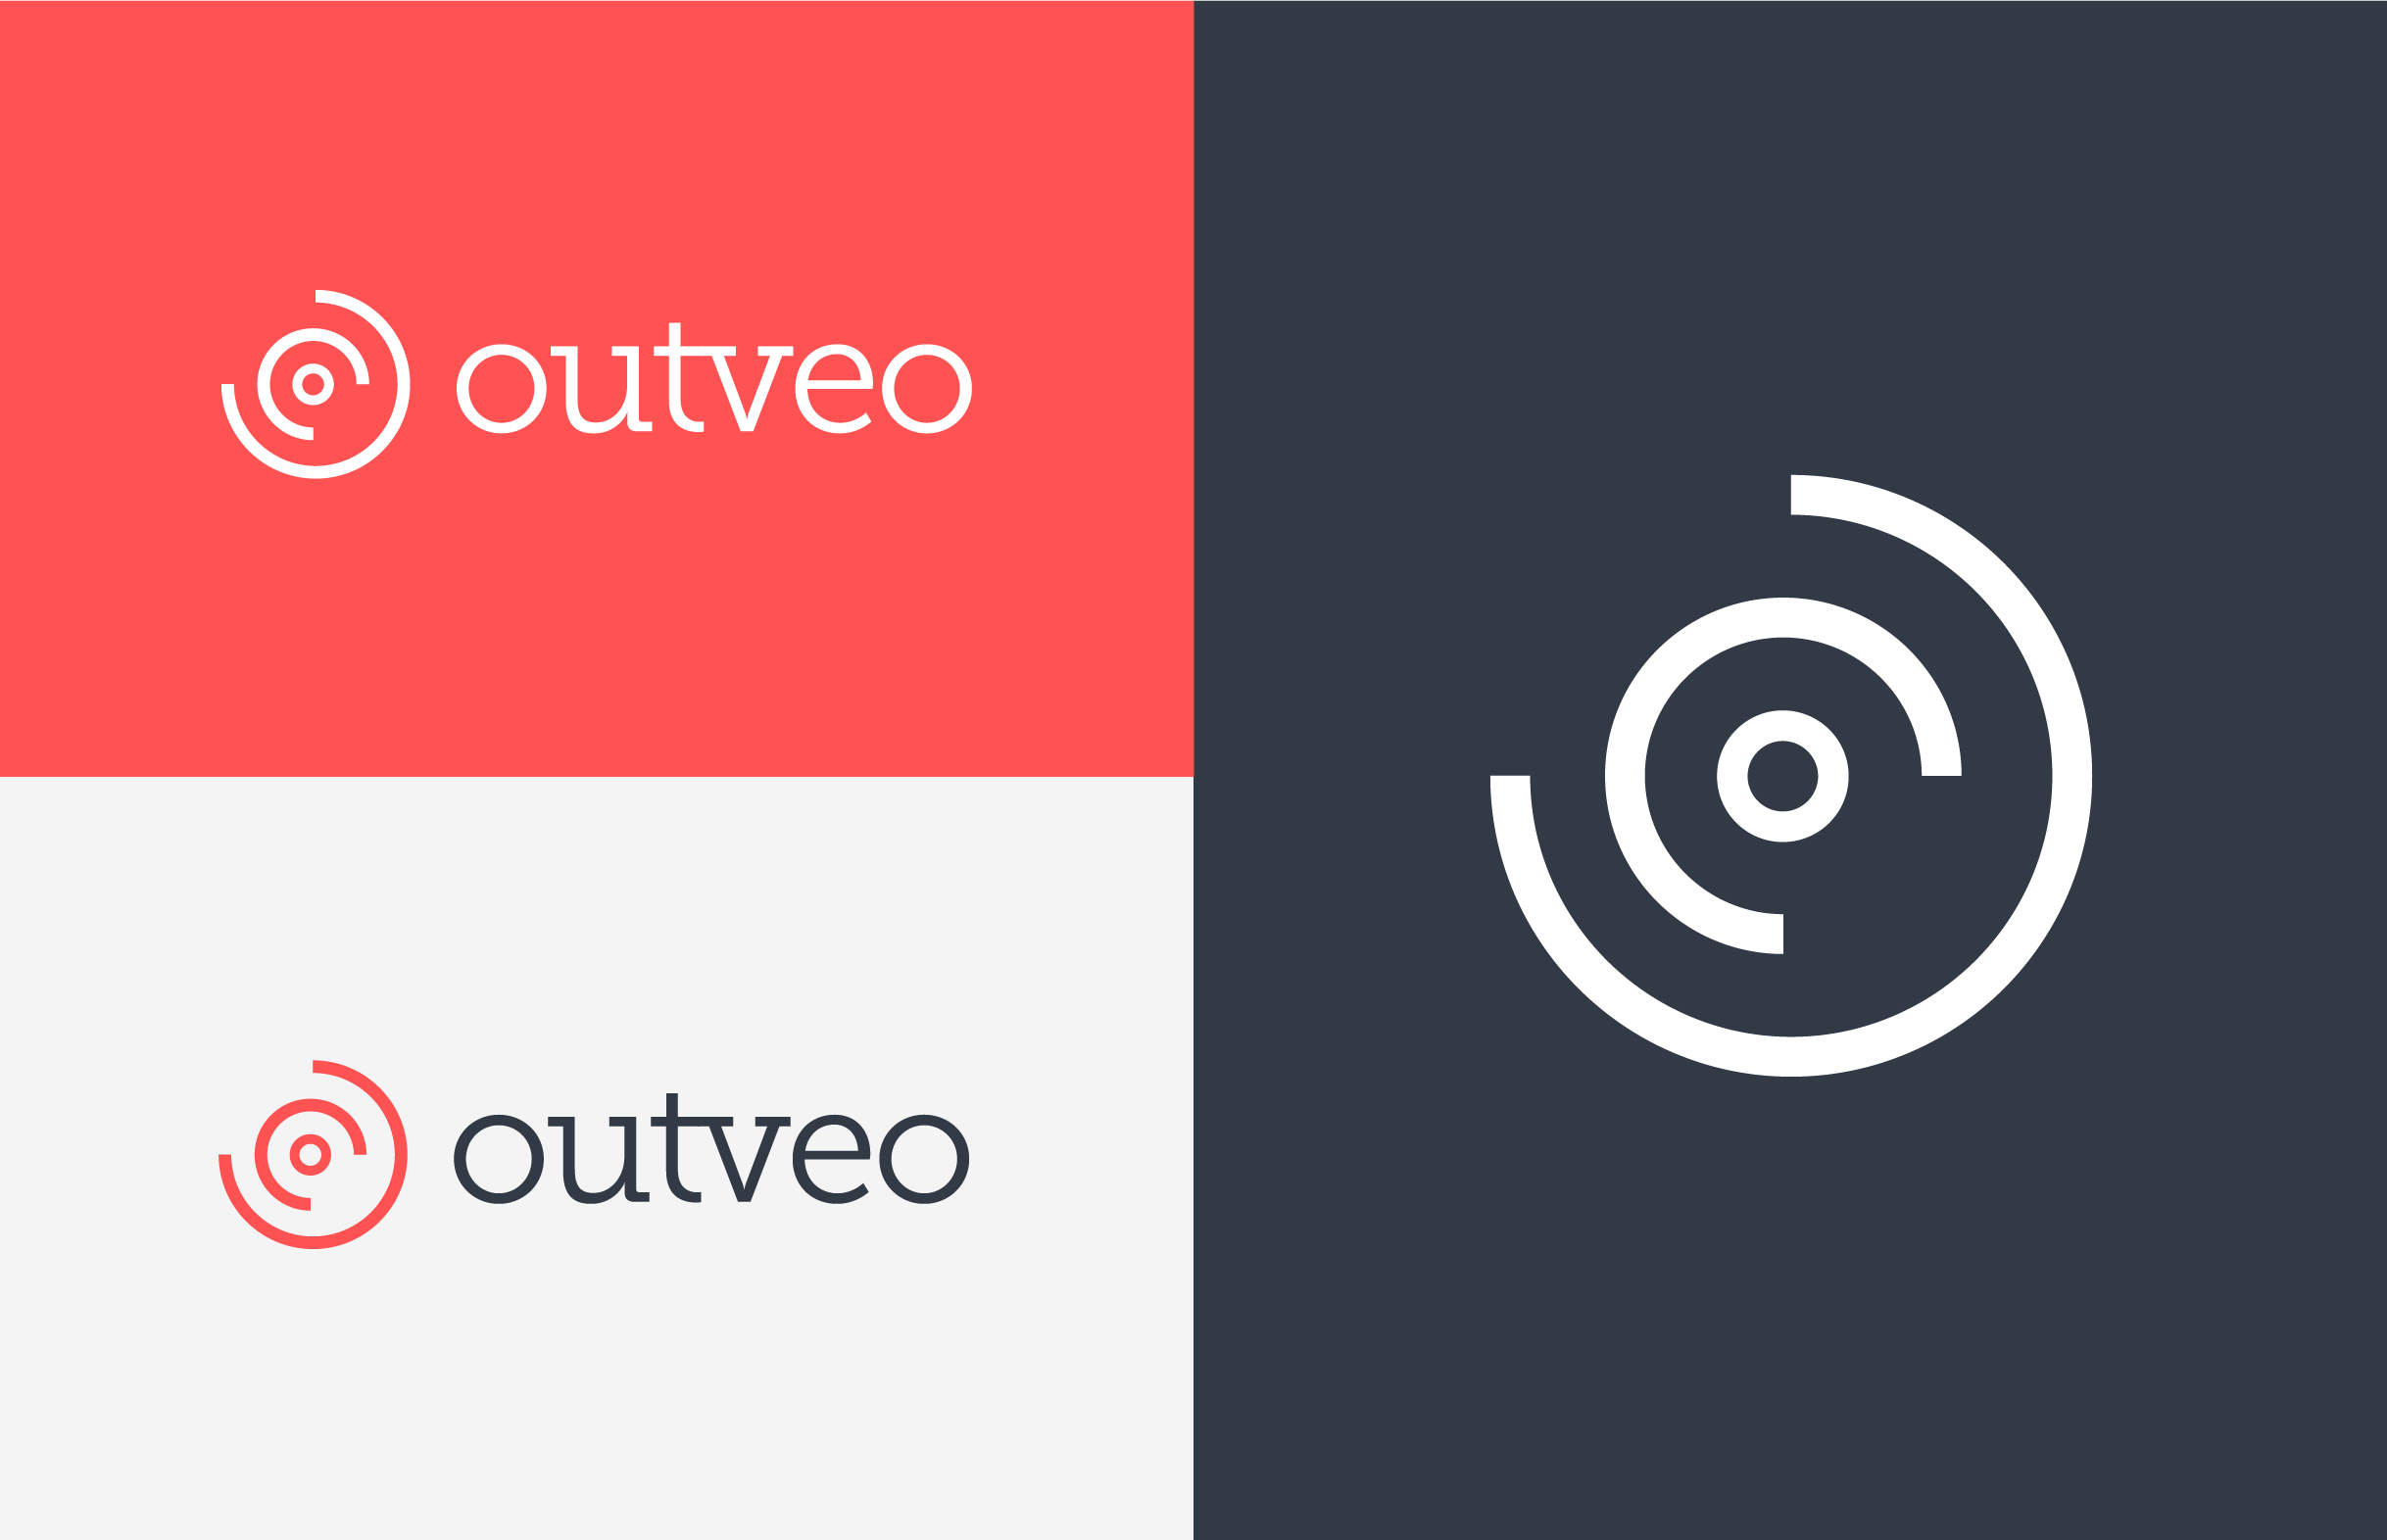 outveo logos.png